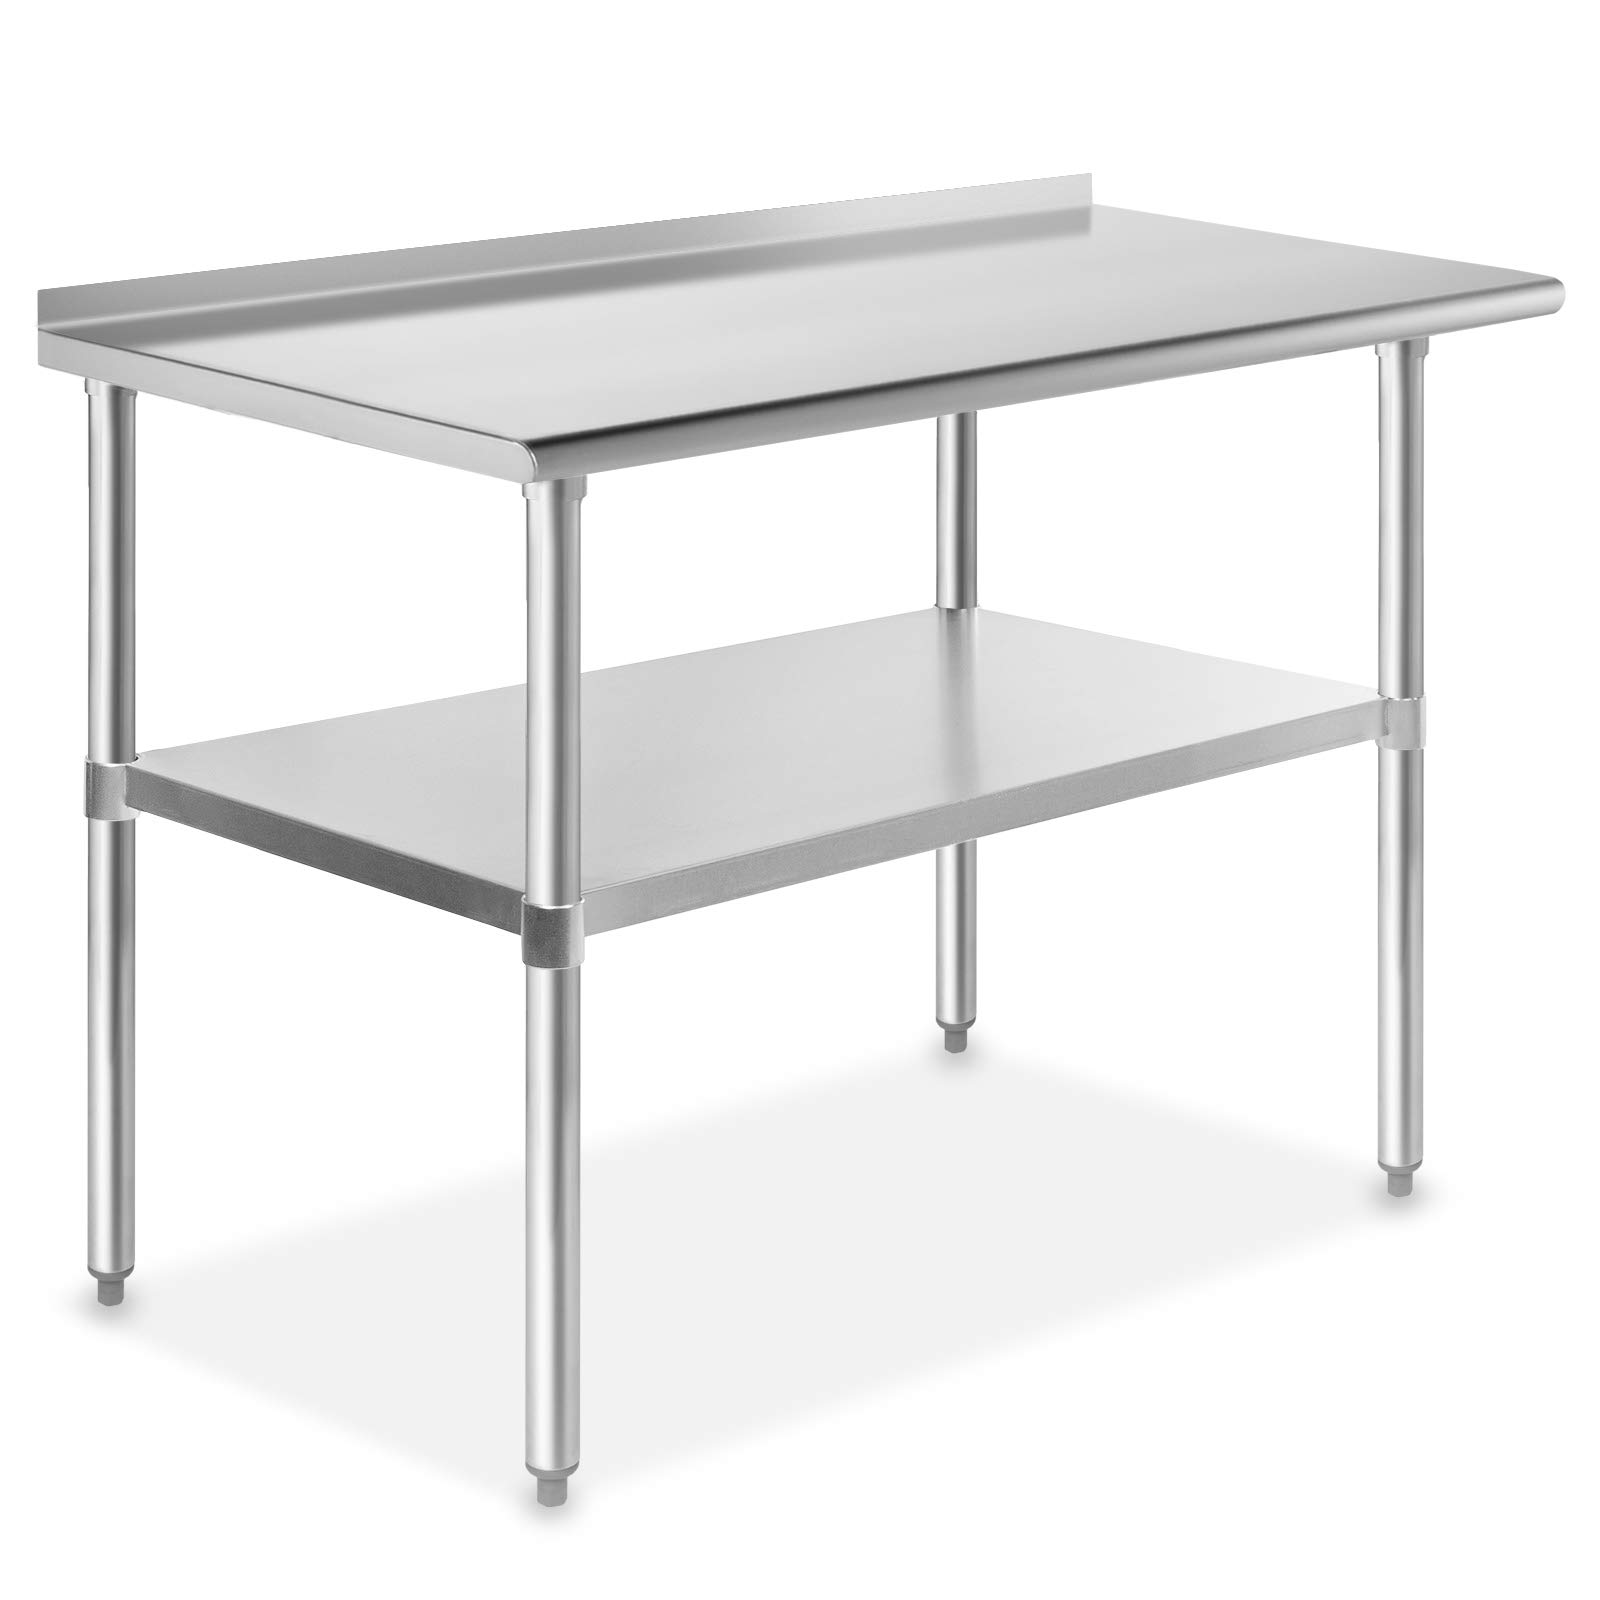 GRIDMANN NSF Stainless Steel Commercial Kitchen Prep & Work Table with Backsplash - 48 in. x 24 in. by GRIDMANN